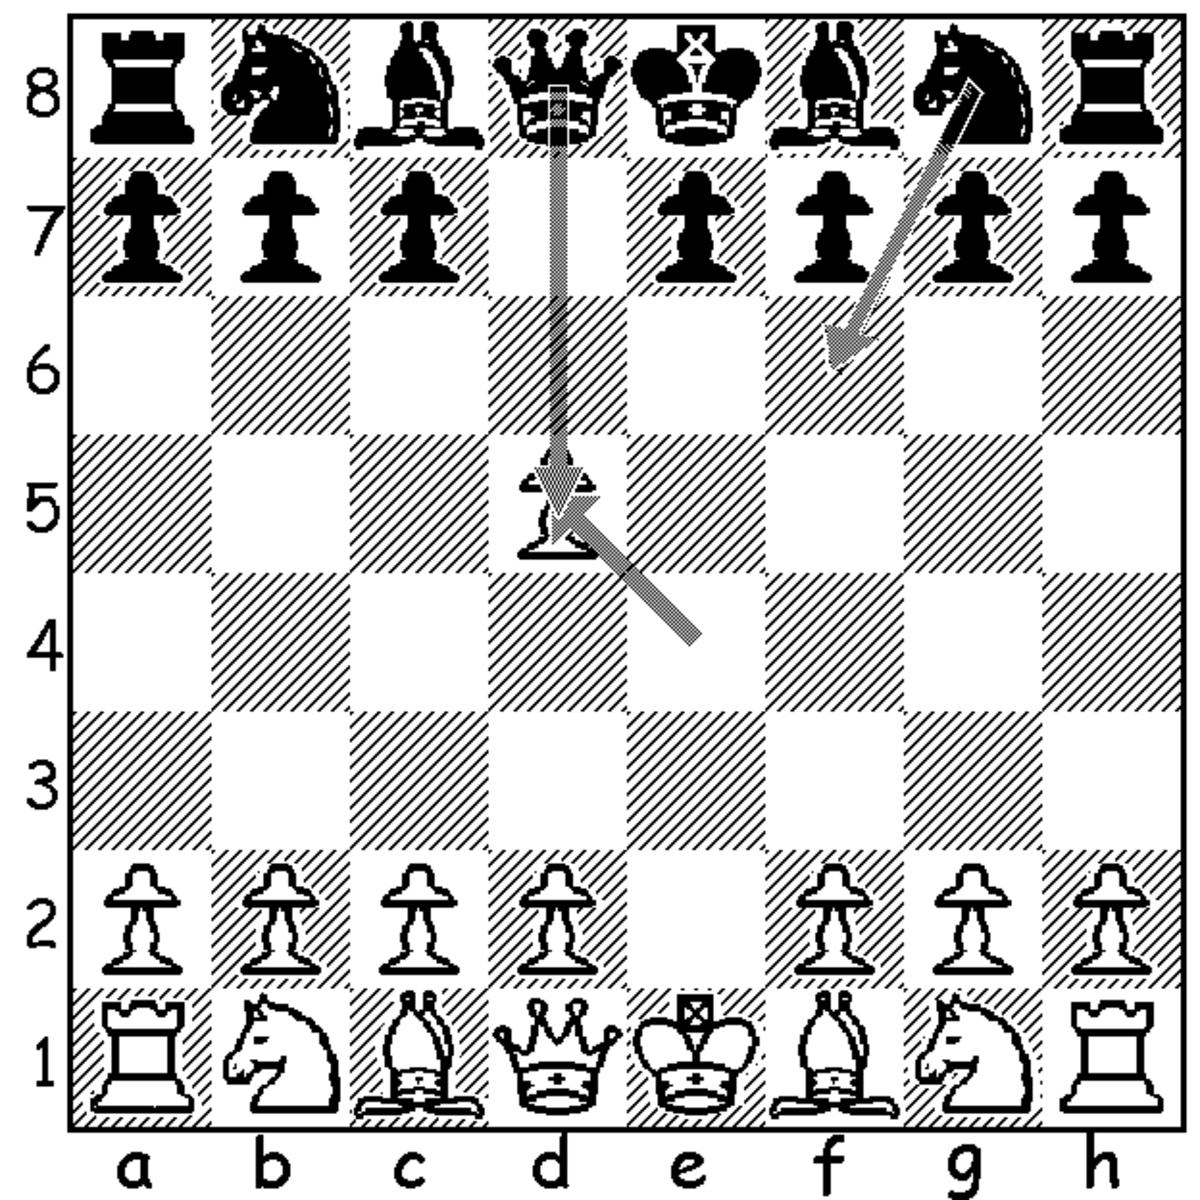 Chess Openings: A Comprehensive and Offbeat Repertoire for White Against the Scandinavian (Center-Counter) Defense